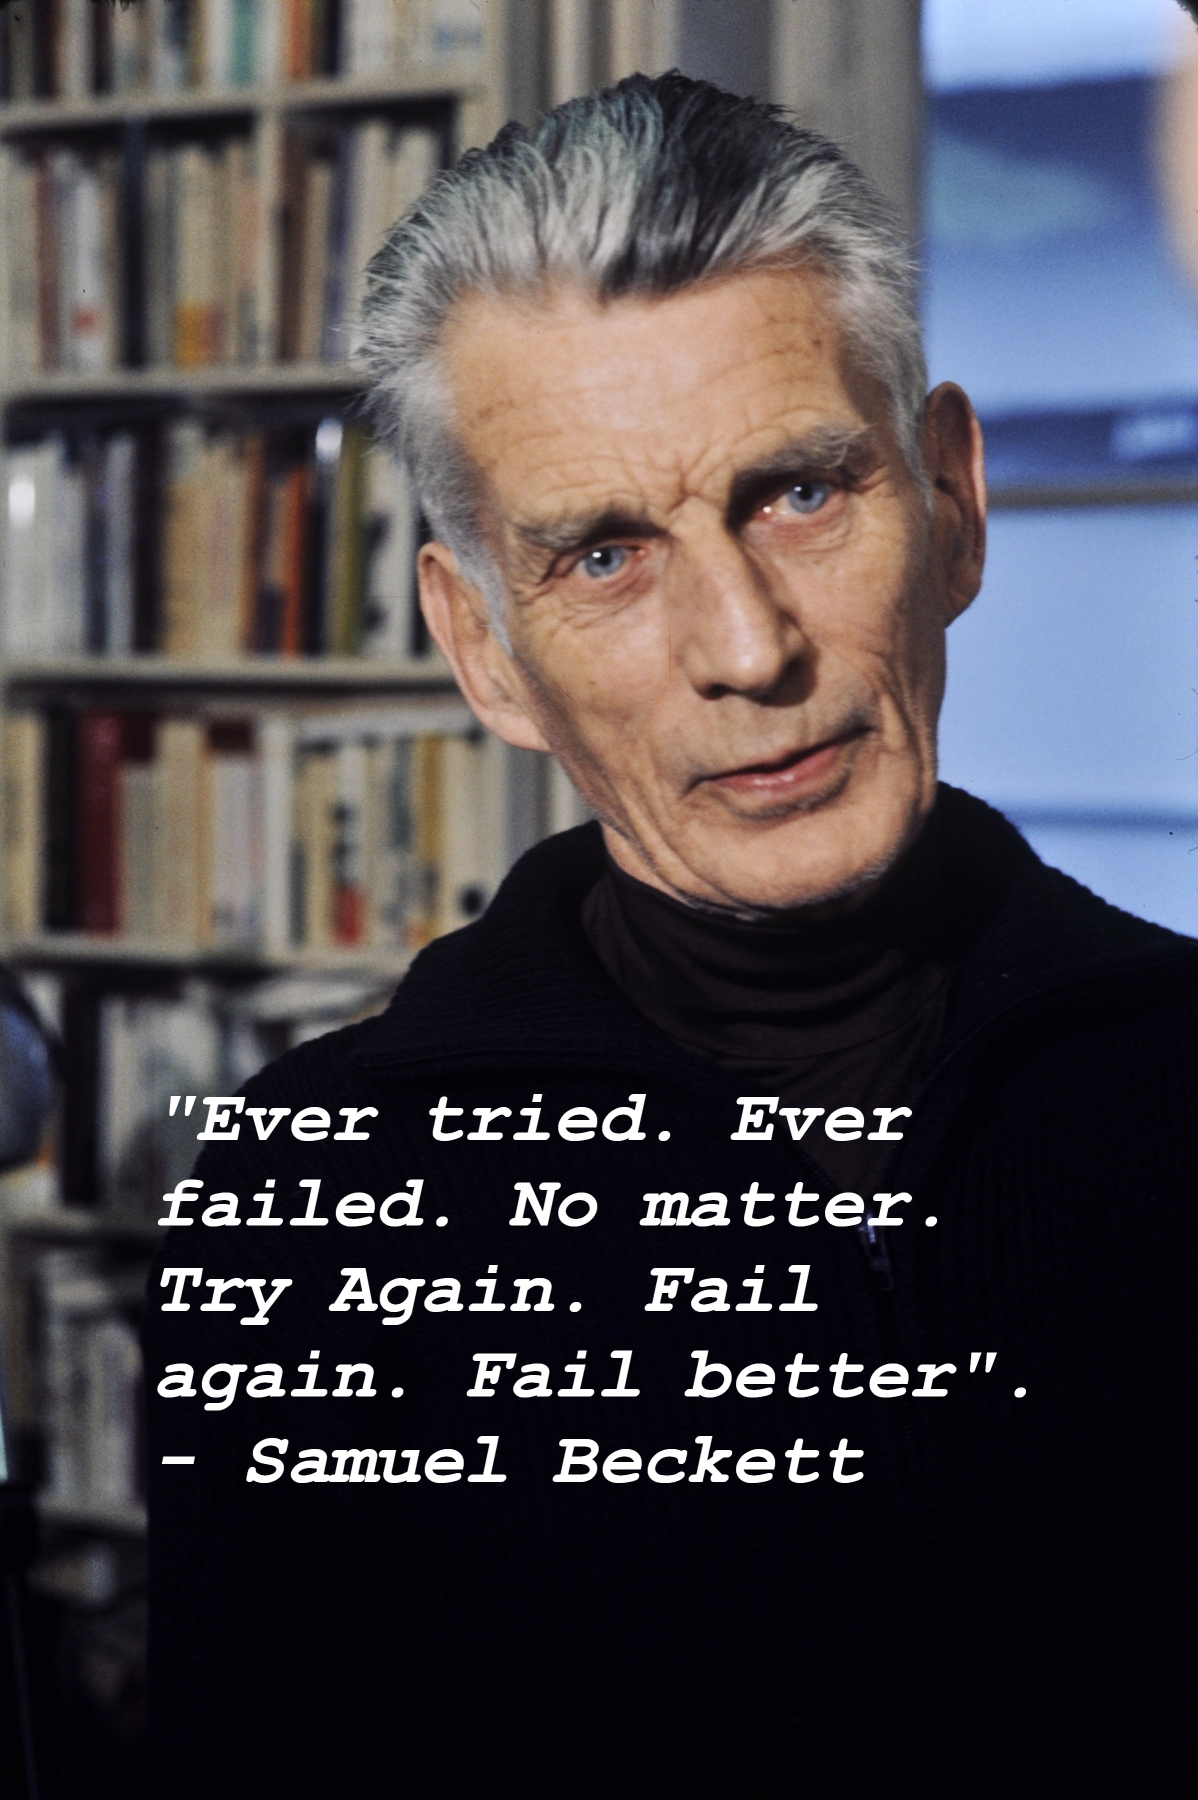 """Ever tried. Ever failed. No matter. Try again. Fail again. Fail better"" – Samuel Beckett [1198 x 1800]"